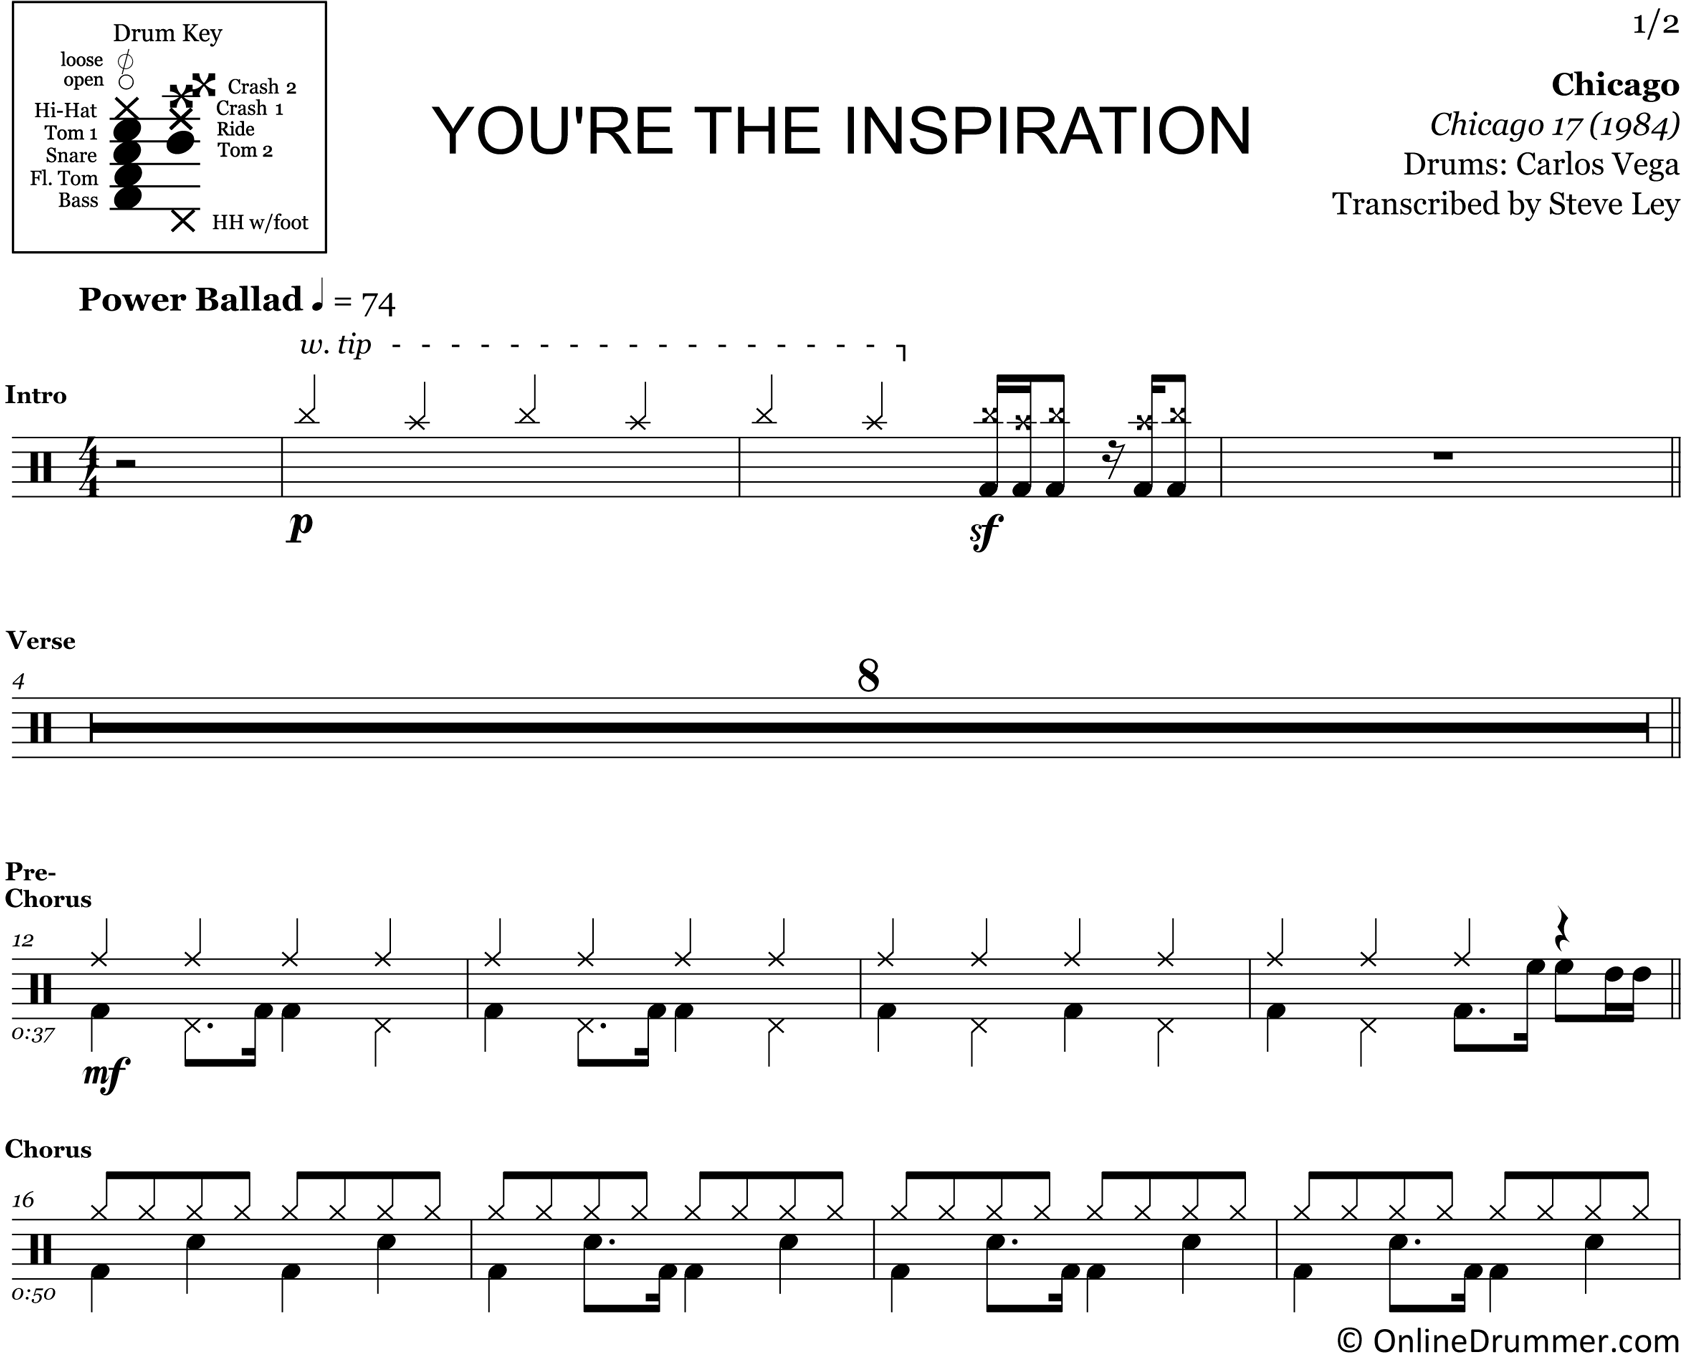 You're the Inspiration - Chicago - Drum Sheet Music